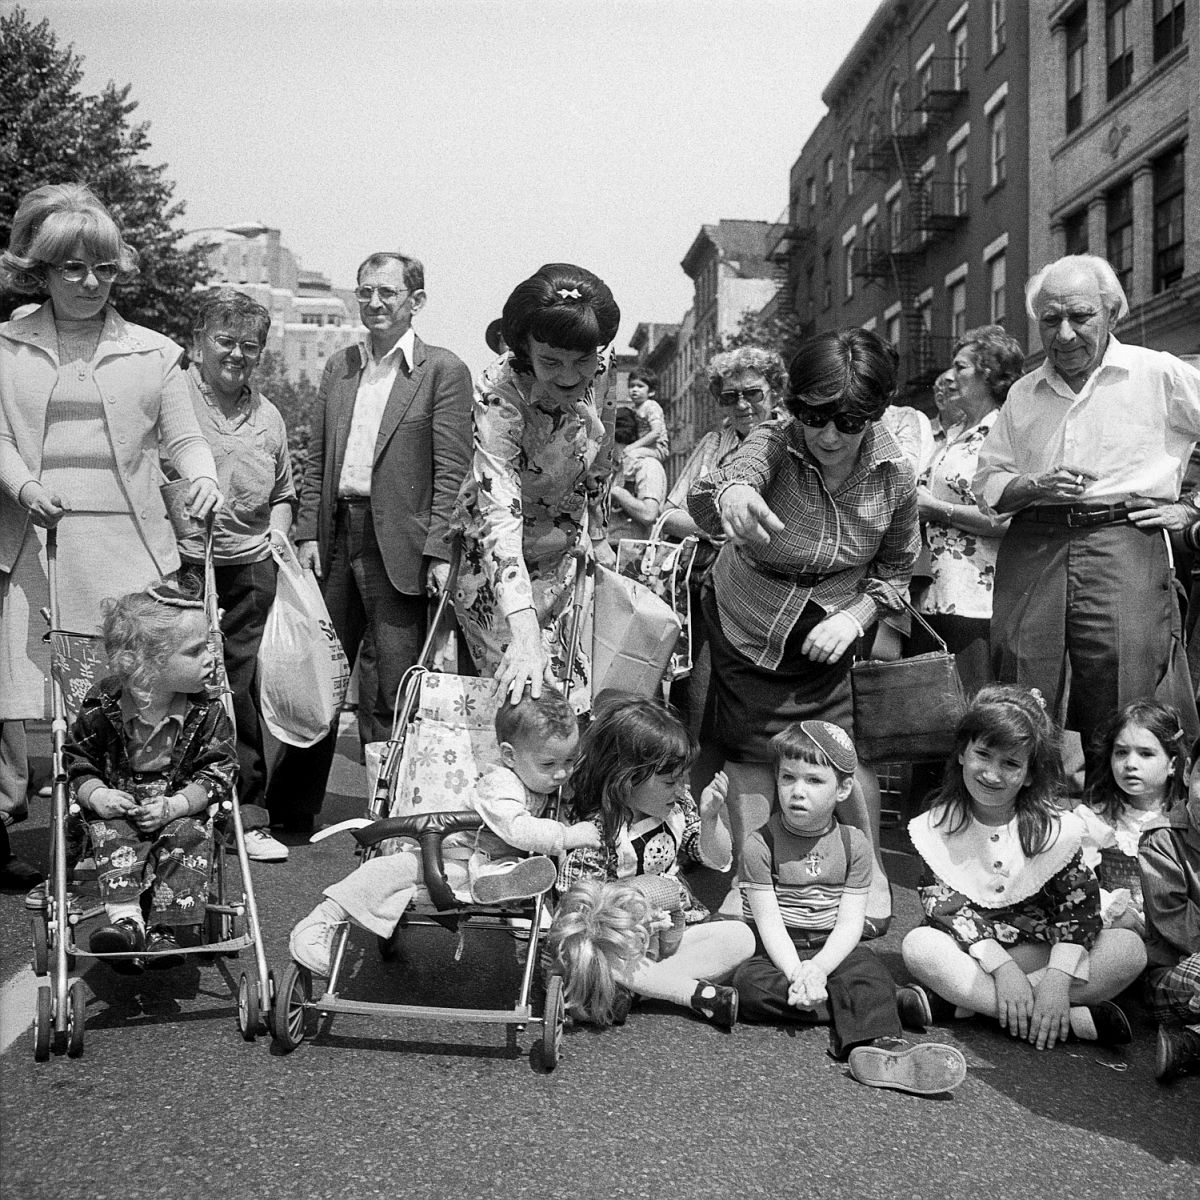 Meryl Meisler: LES YES! Photographs of the Lower East Side in the '70s & '80s